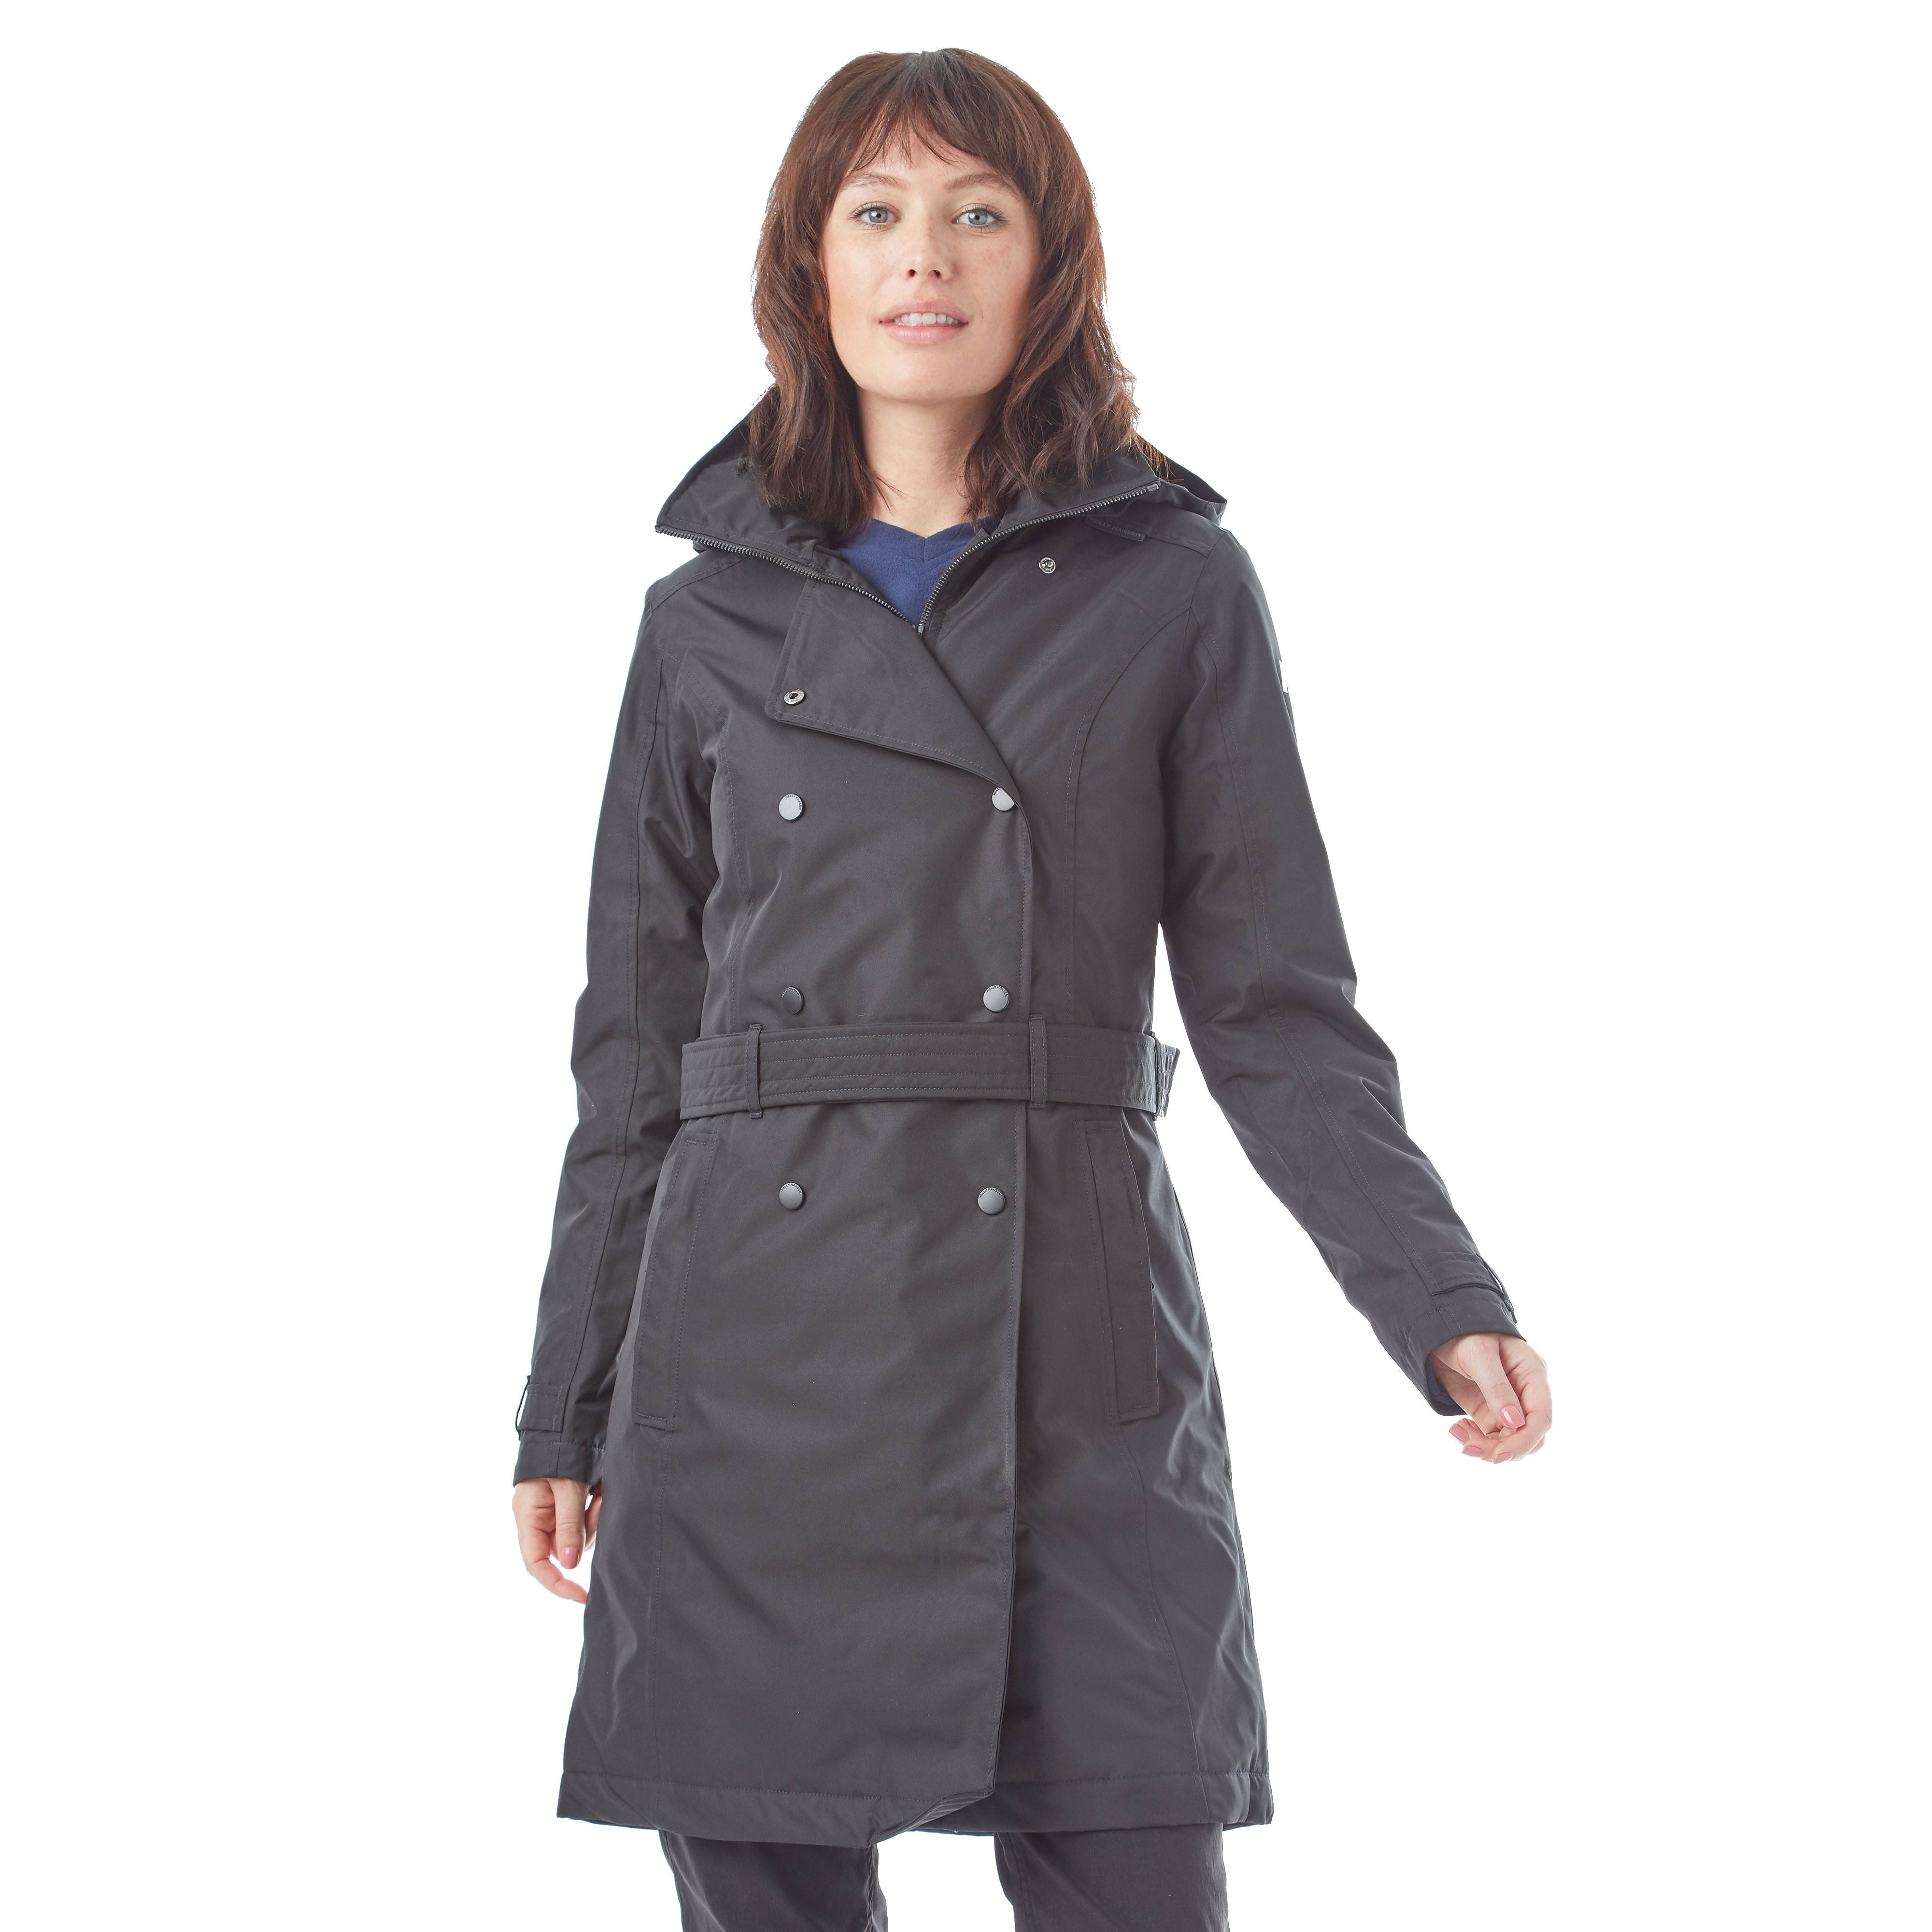 Helly hansen Welsey Insulated Women's Trench Coat